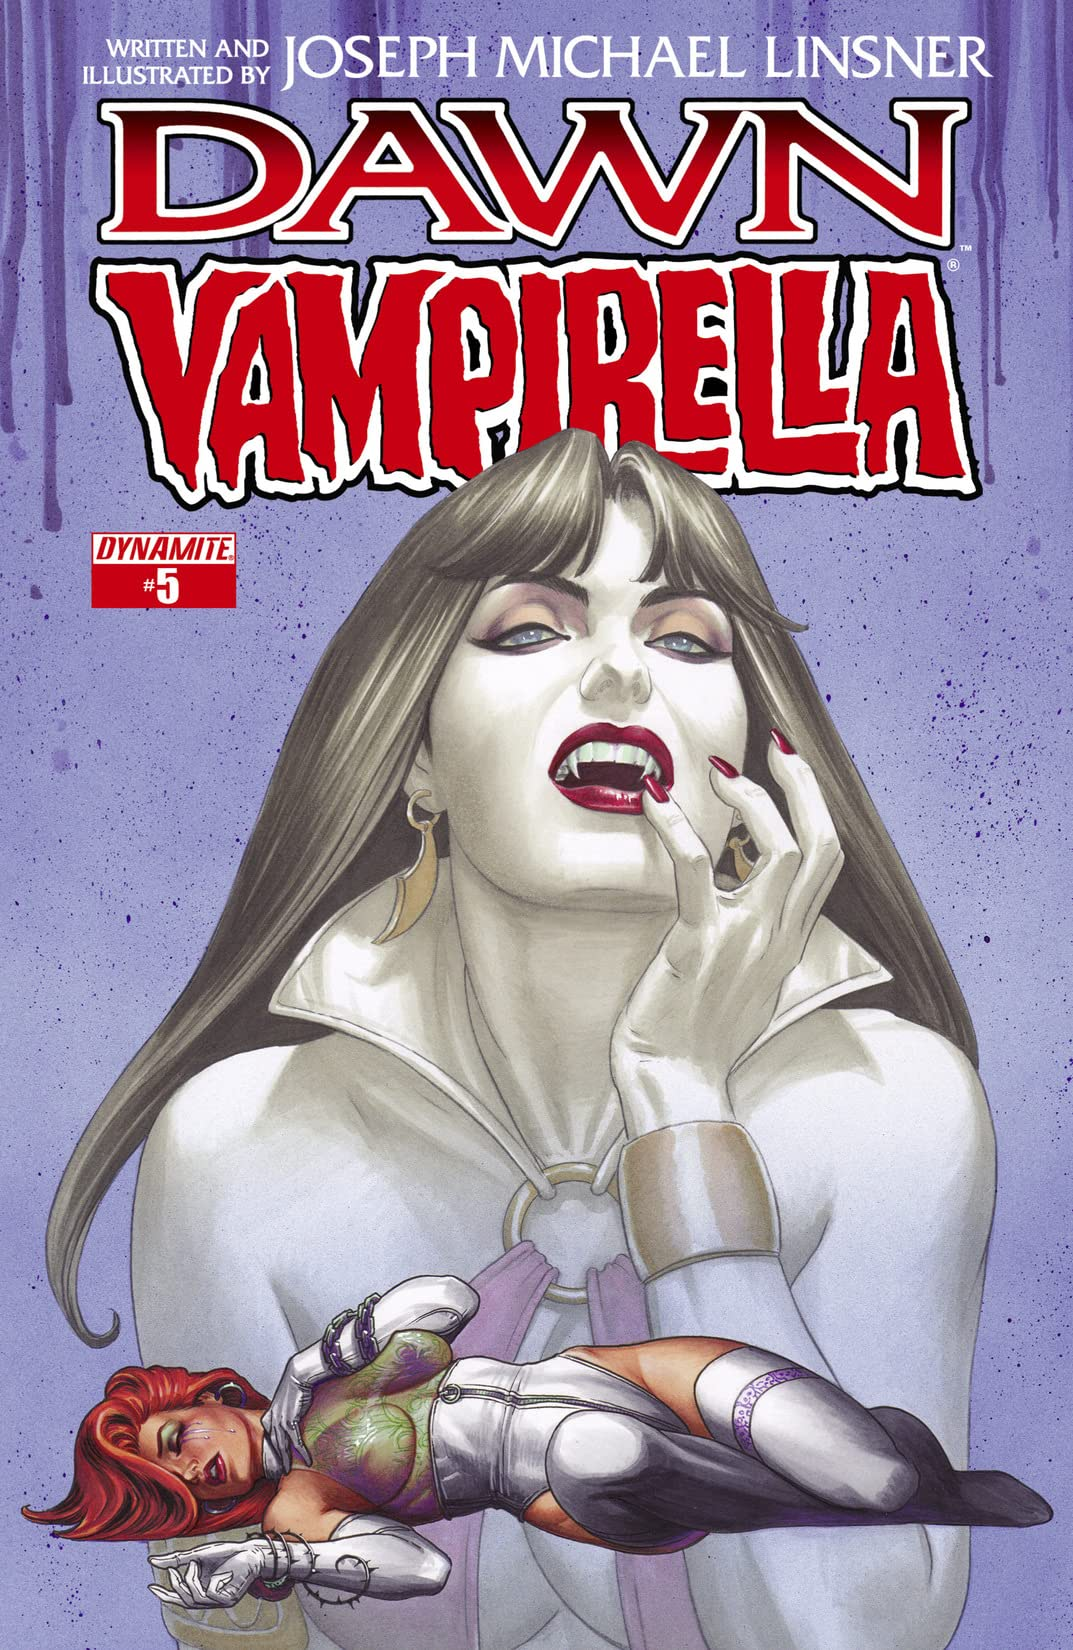 Dawn/Vampirella #5: Digital Exclusive Edition